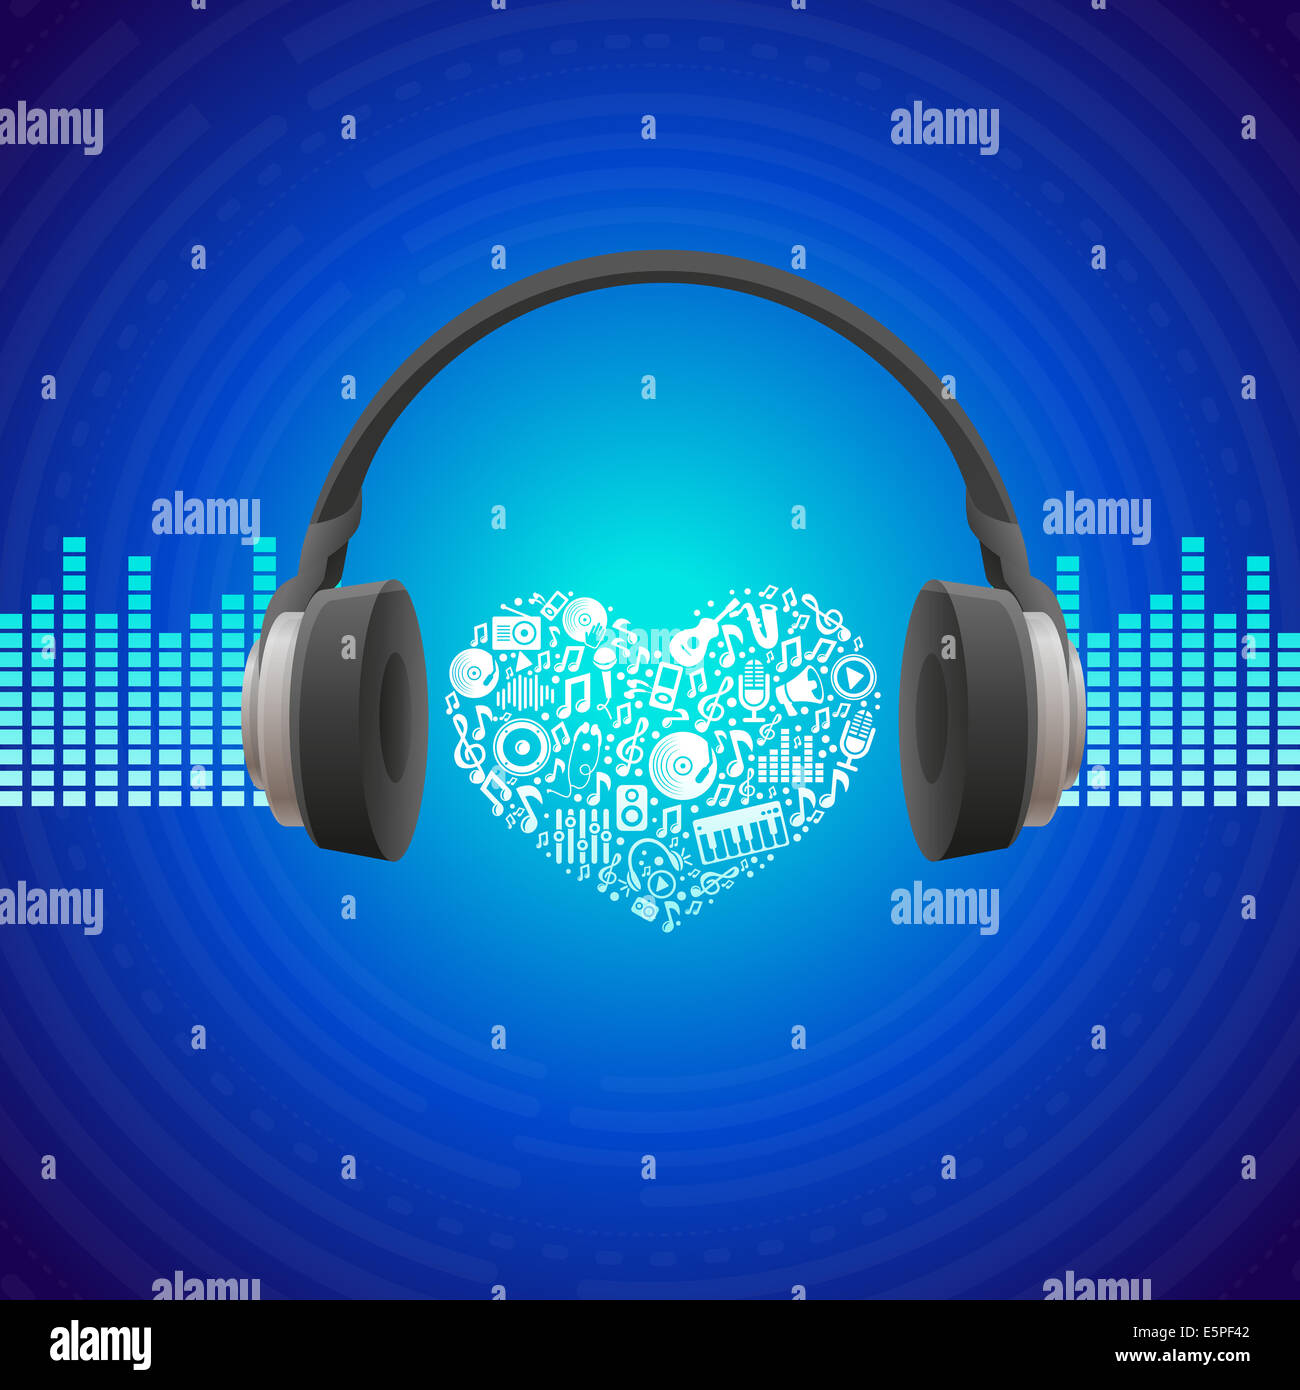 Music concept - abstract background with headphones icon - Stock Image